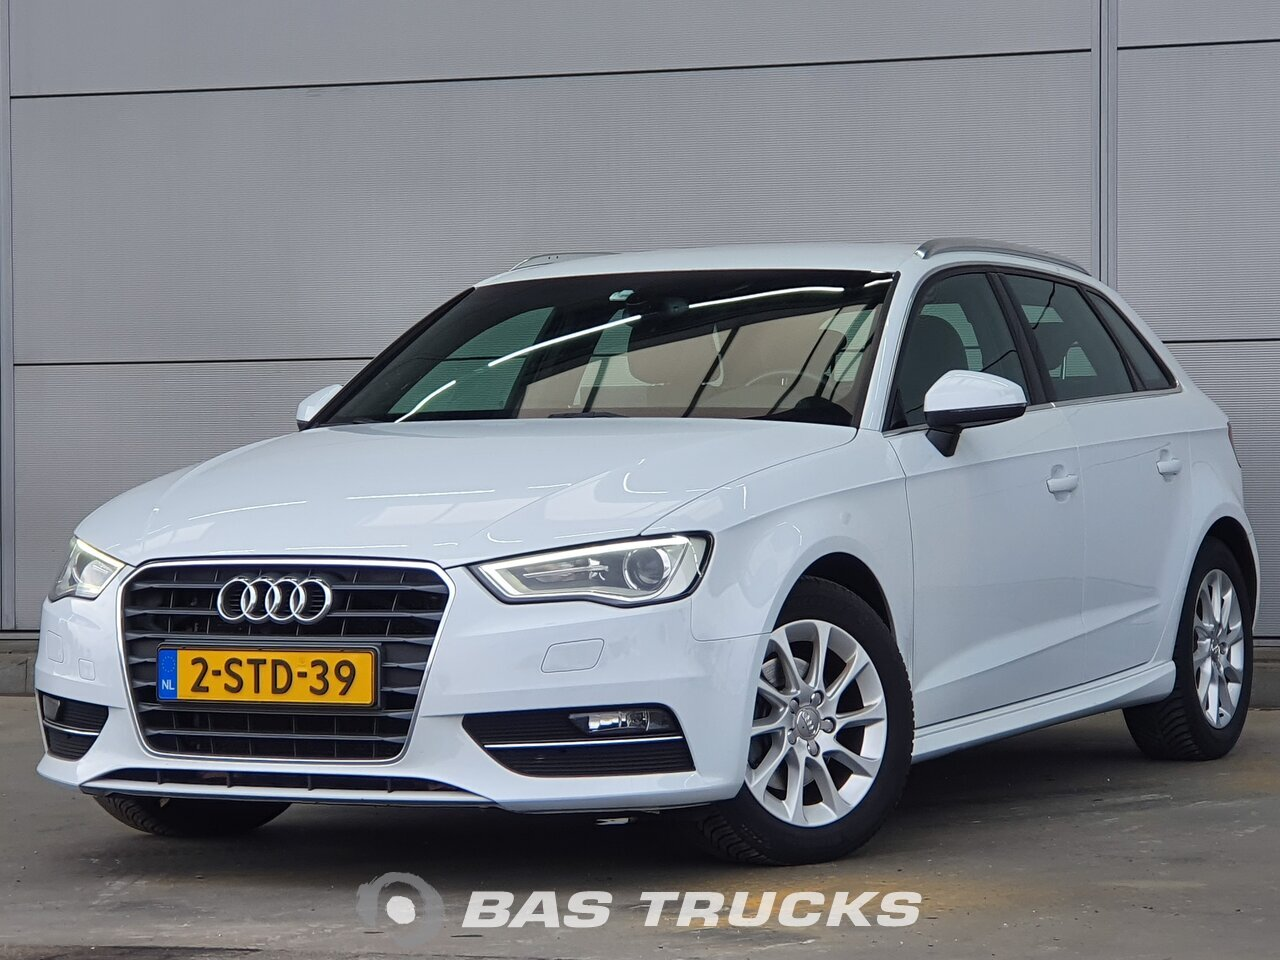 For sale at BAS Trucks: AUDI A8 8X8 18/8018   used cars audi a3